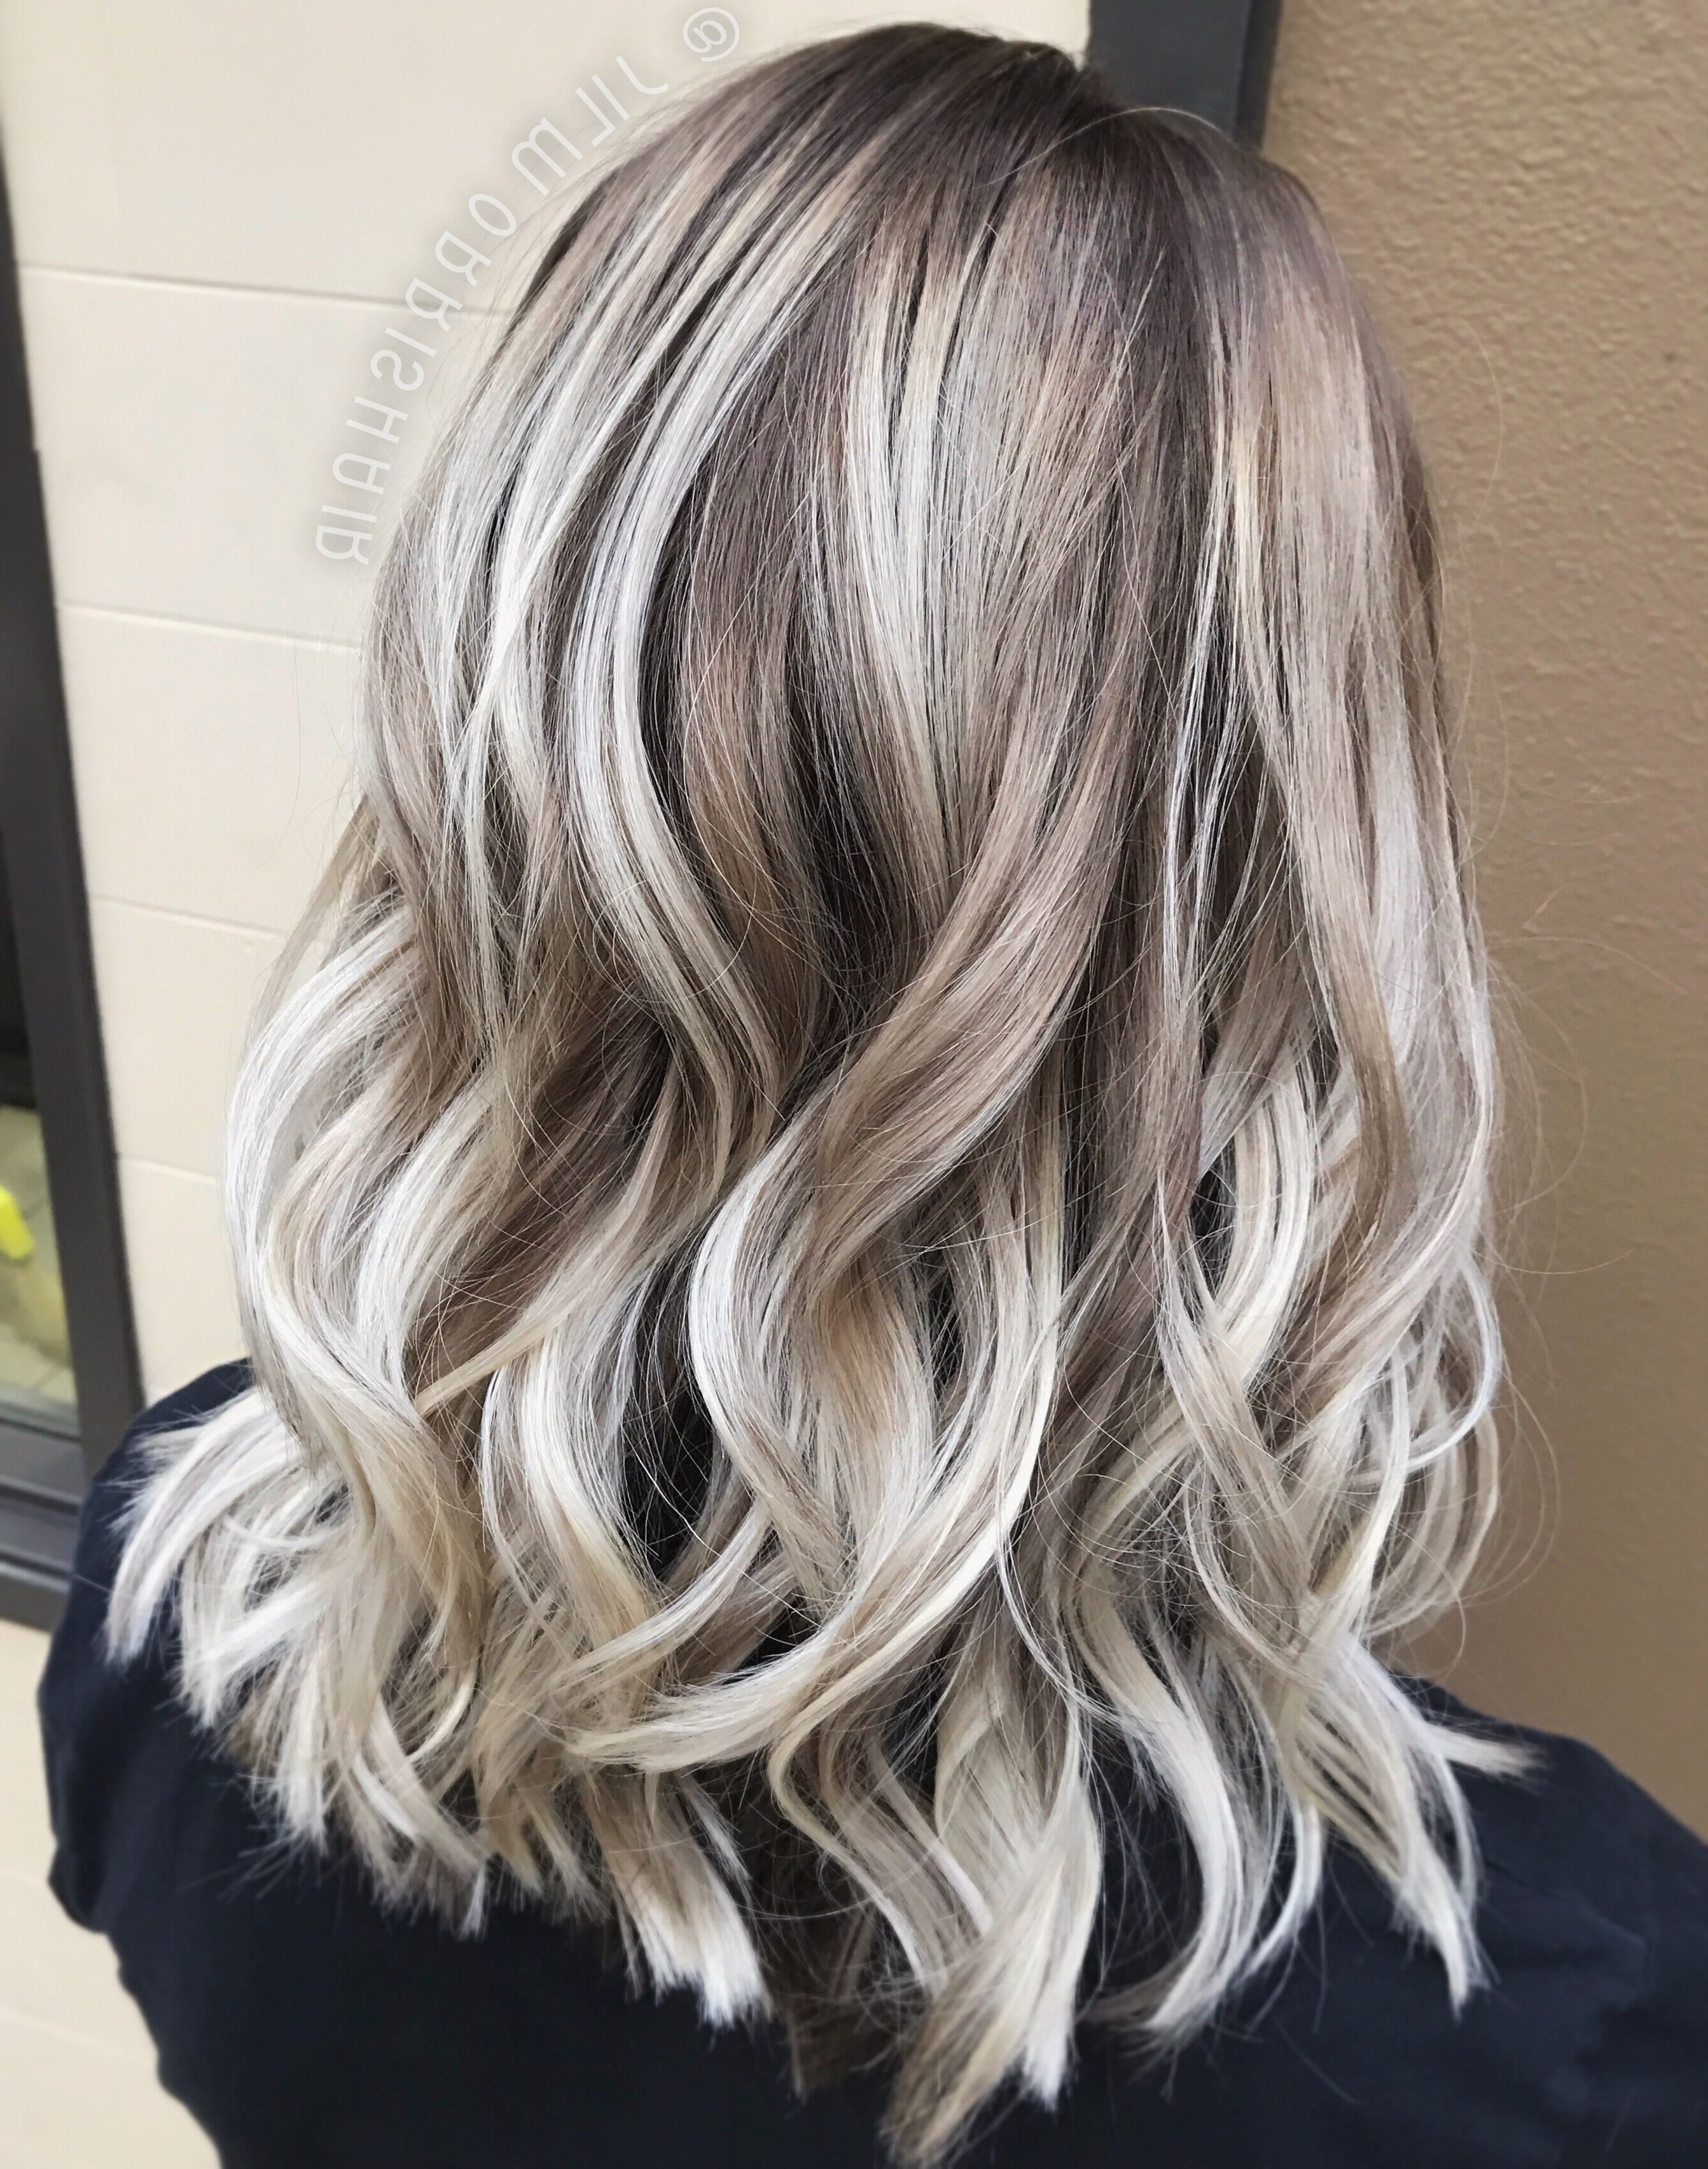 Most Up To Date Ash Blonde Lob With Subtle Waves With White Ash Blonde Balayage, Shadow Root, Curls In A Textured Lob (View 10 of 20)